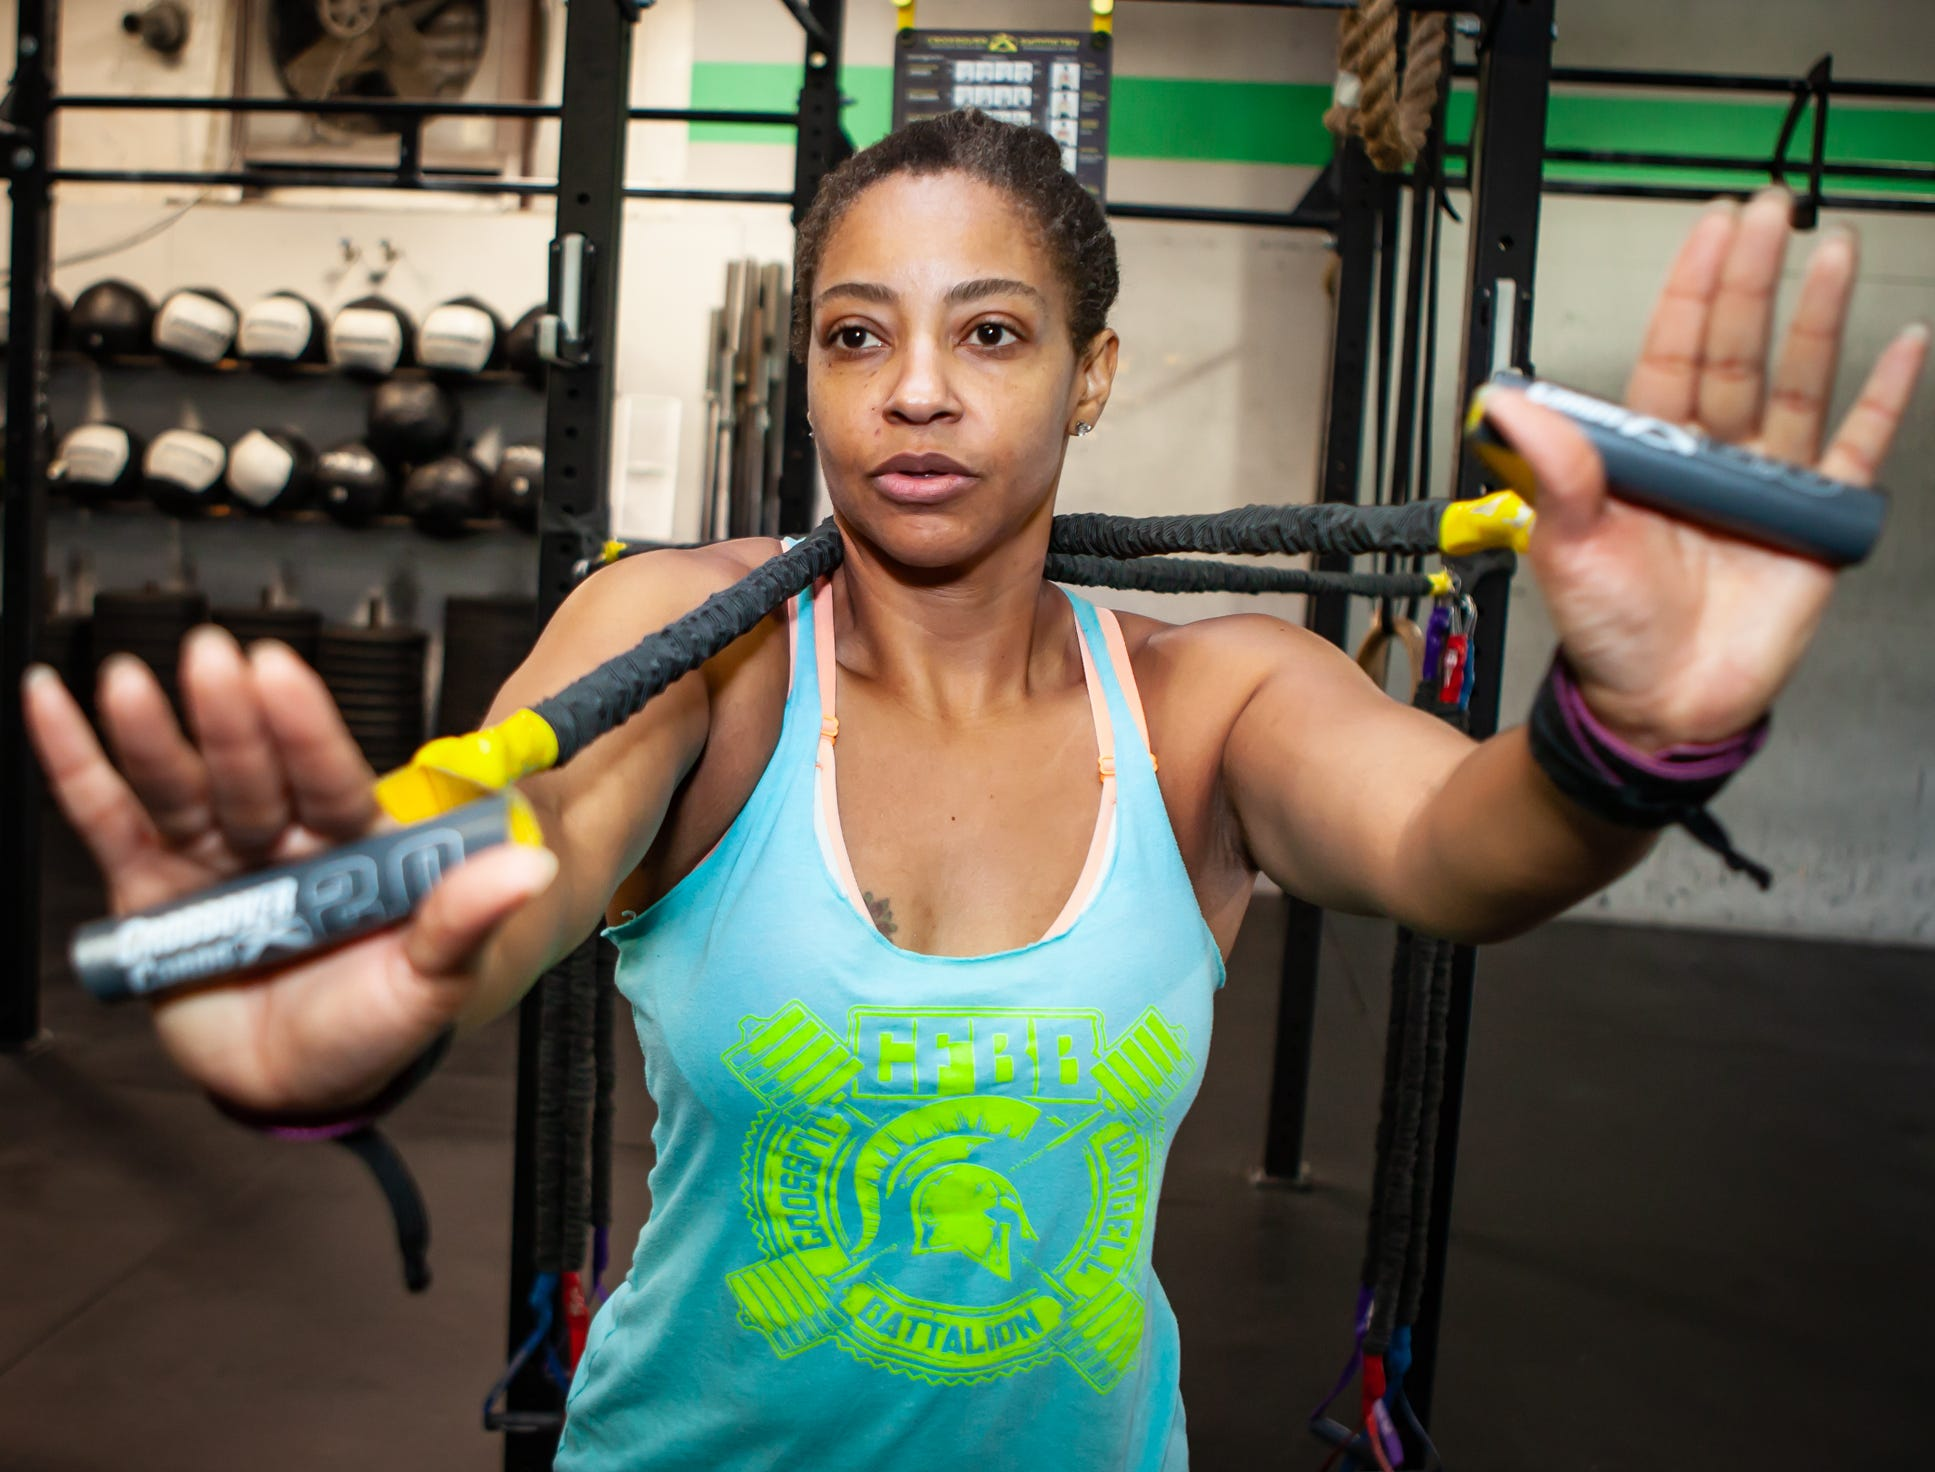 Pam McCluney works out at CrossFit Barbell Batallion in downtown Murfreesboro.